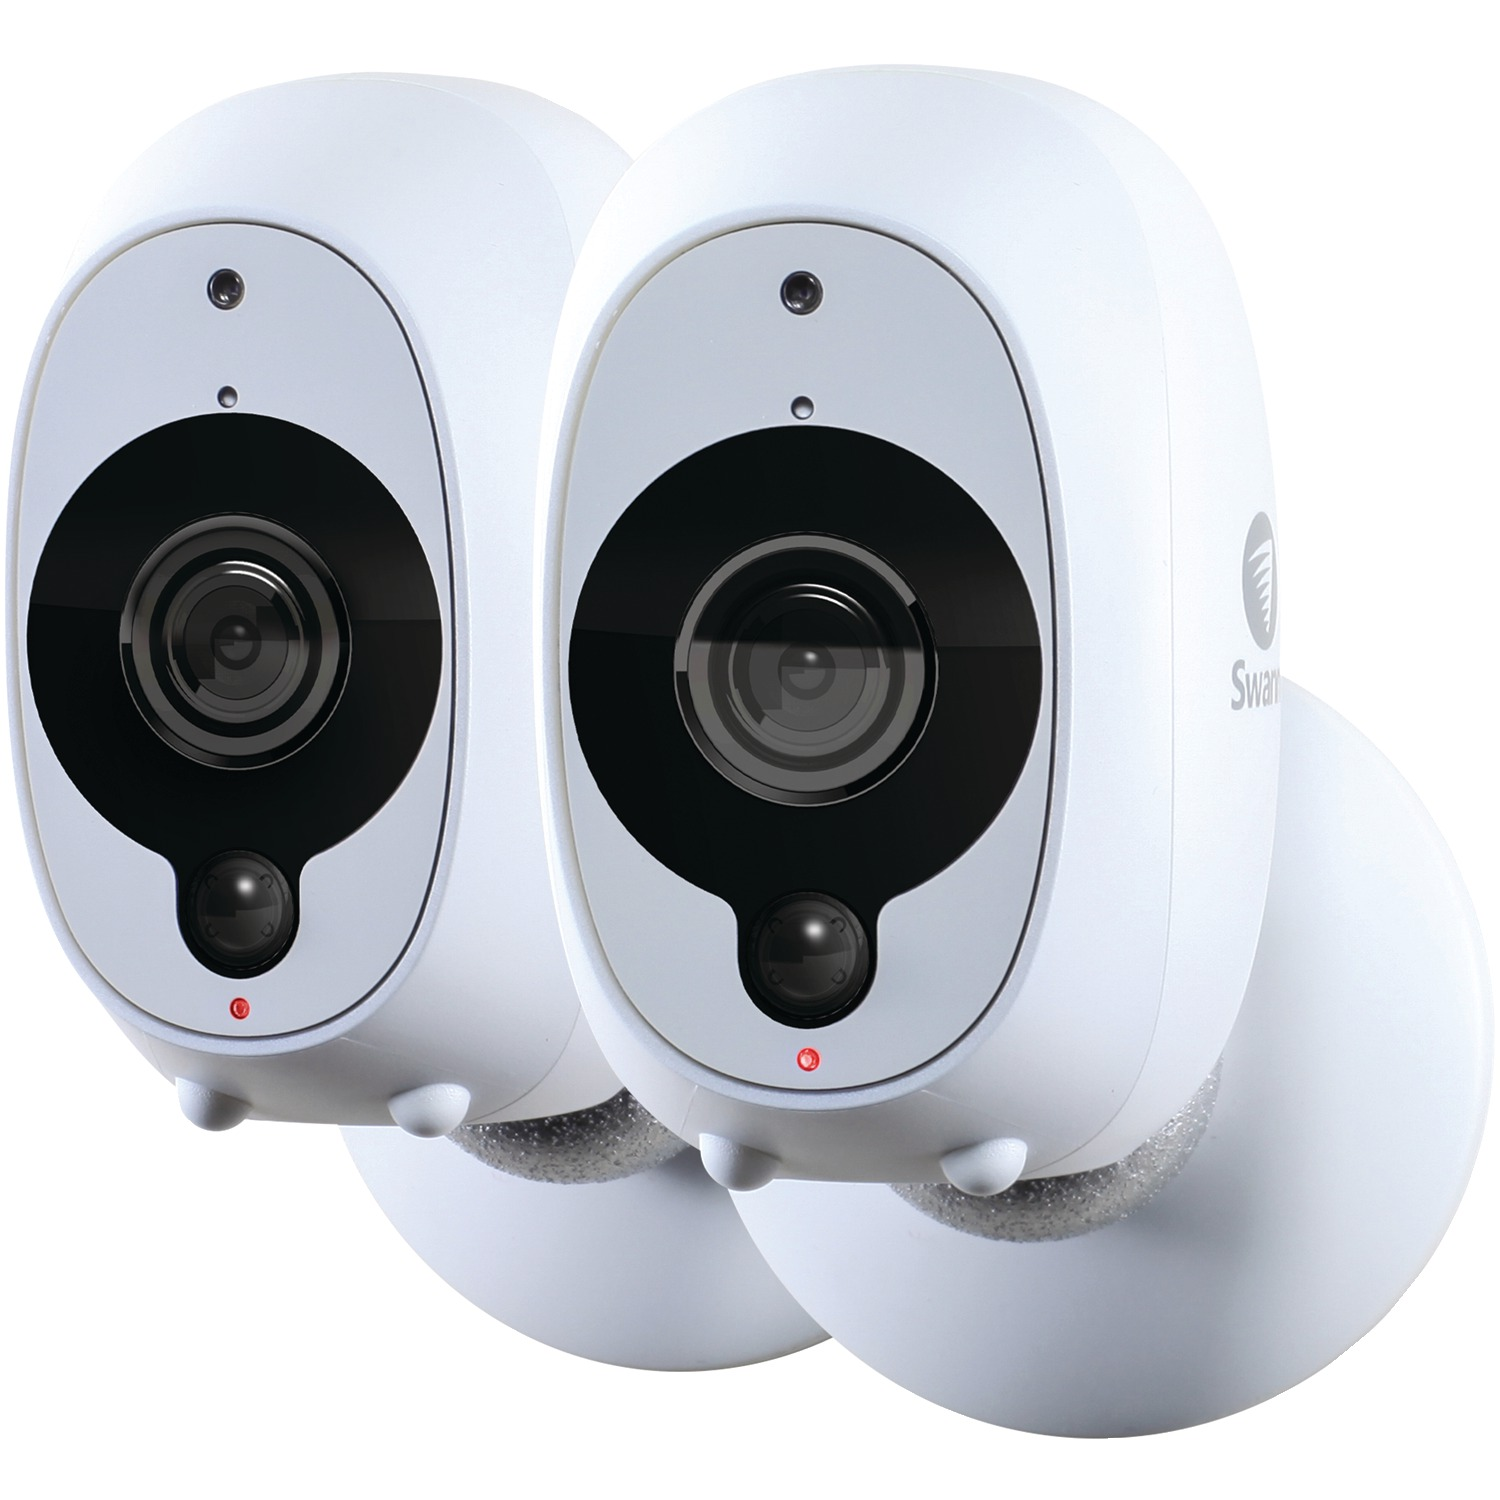 Swann SWWHD-INTCAMPK2-US 1080p Full HD Battery-Powered Wire-Free Camera (2Pk)